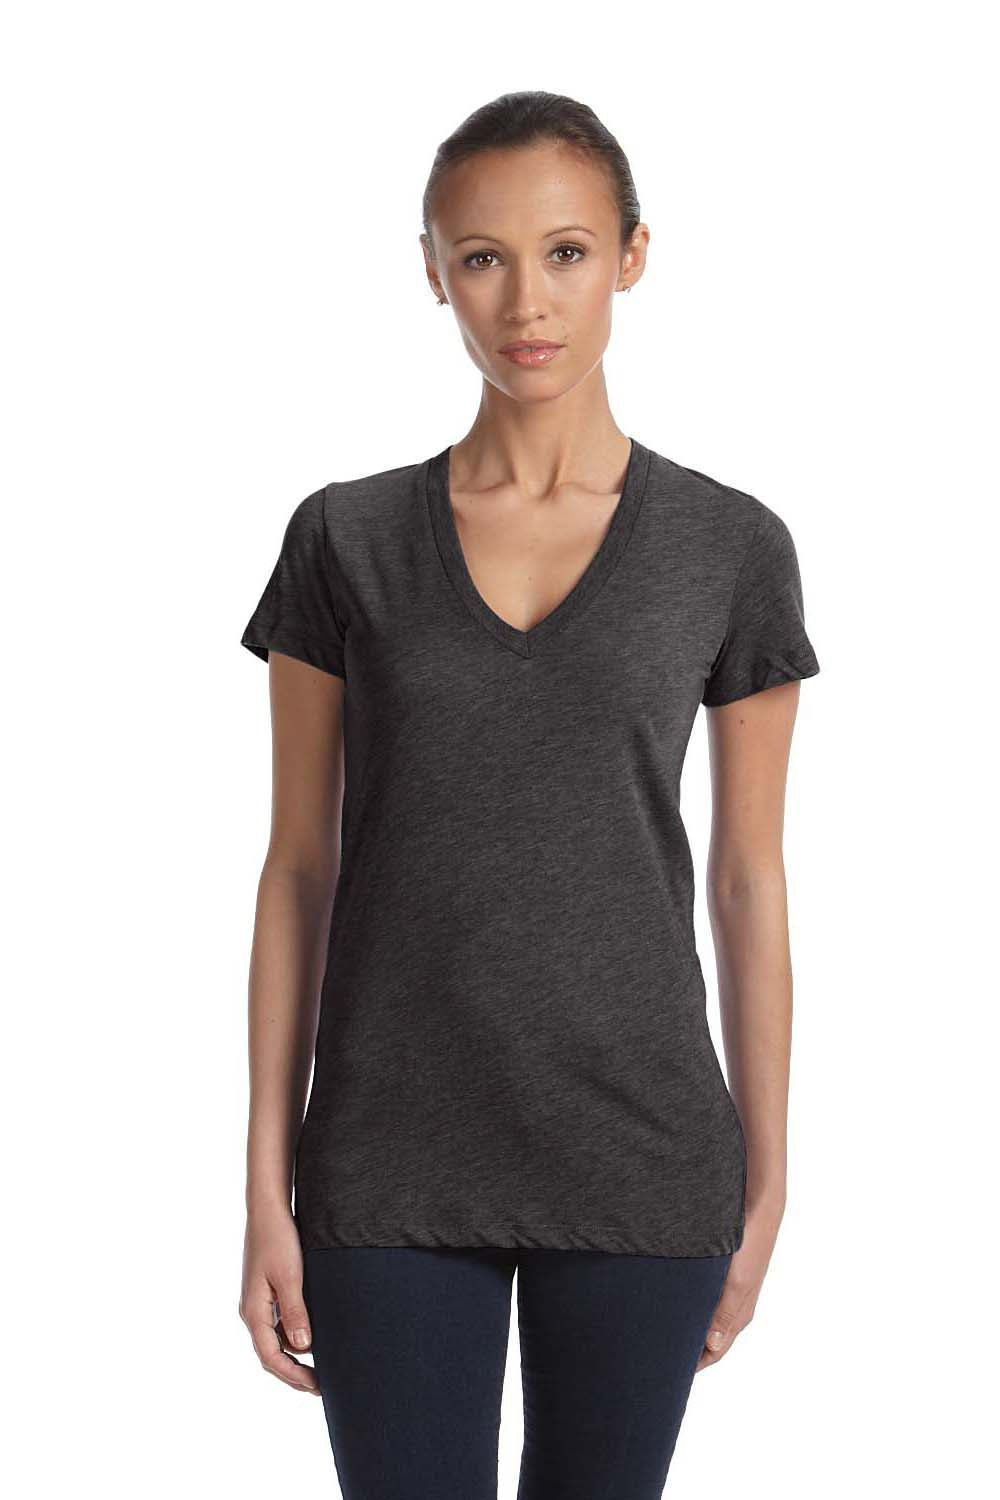 Bella + Canvas 8435 Womens Short Sleeve Deep V-Neck T-Shirt Heather Charcoal Grey Front